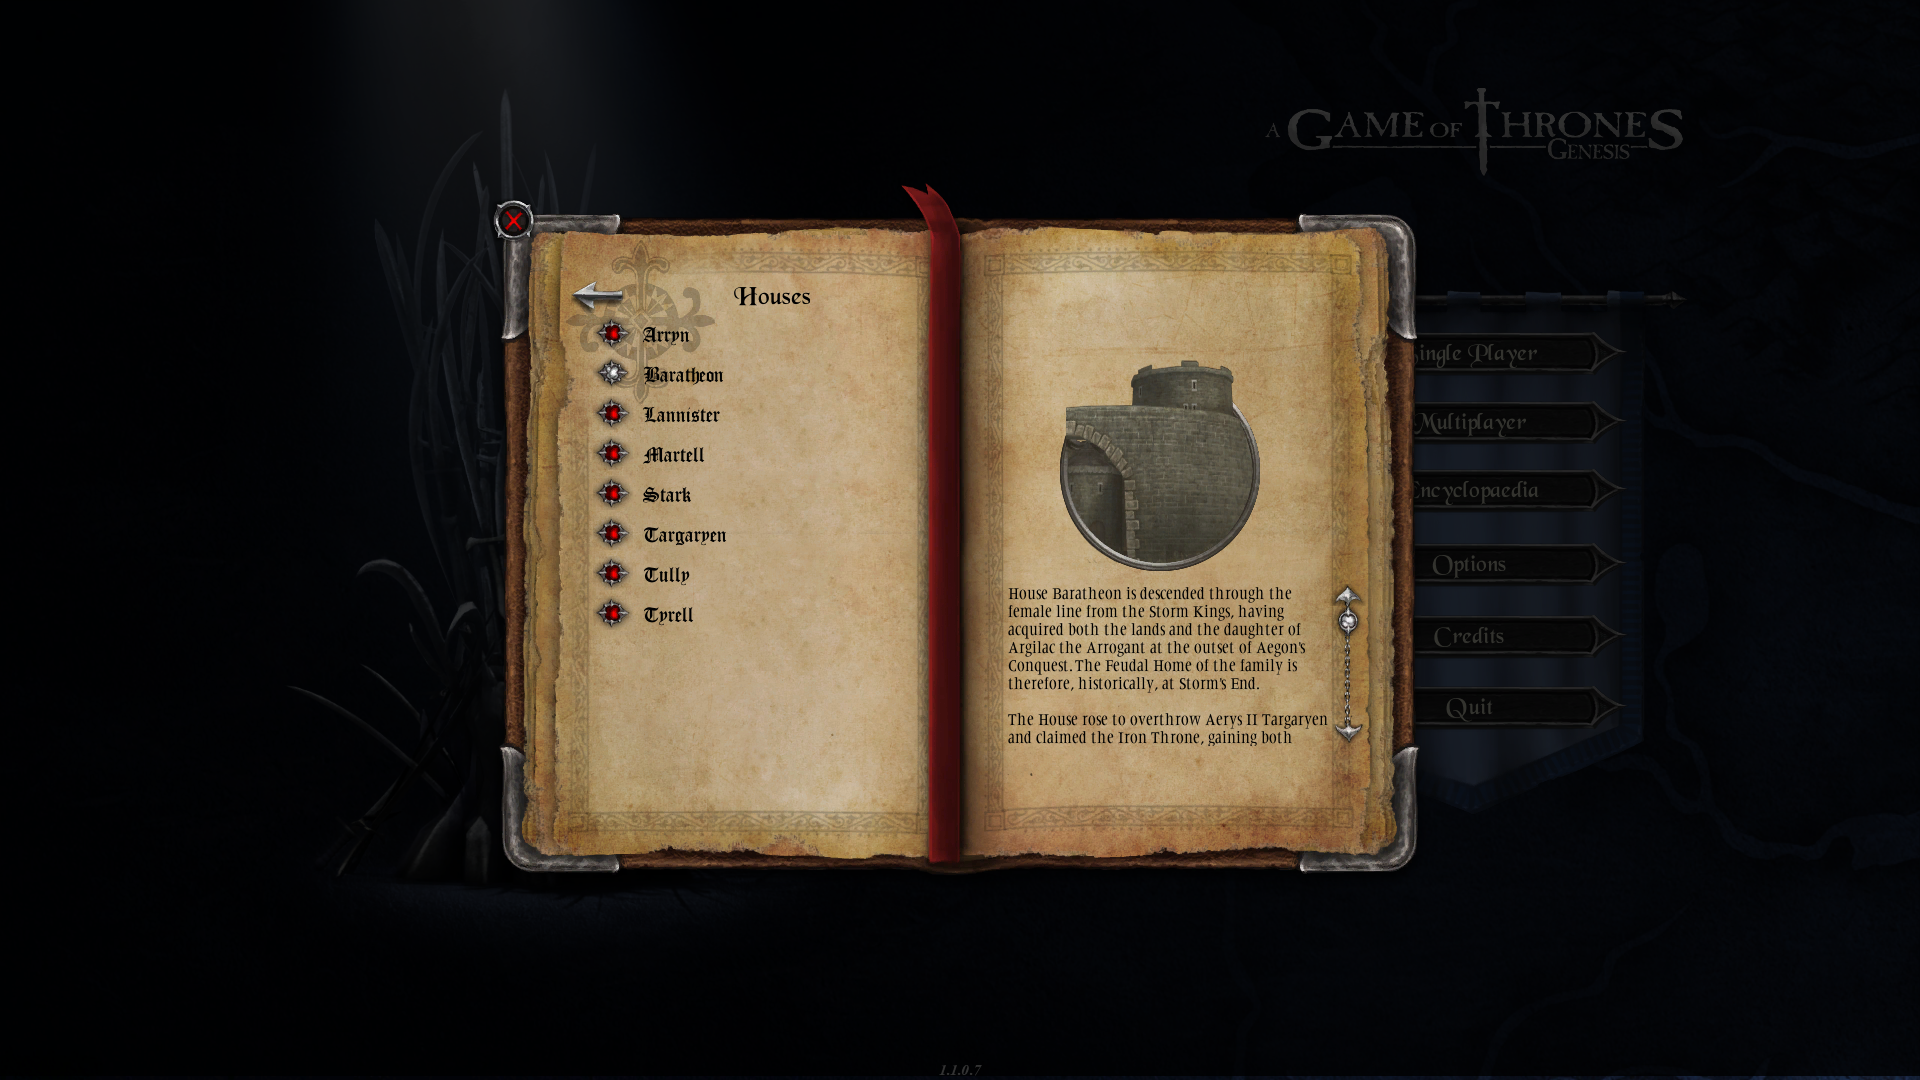 A Game of Thrones: Genesis Windows The game features a fairly extensive encyclopedia.